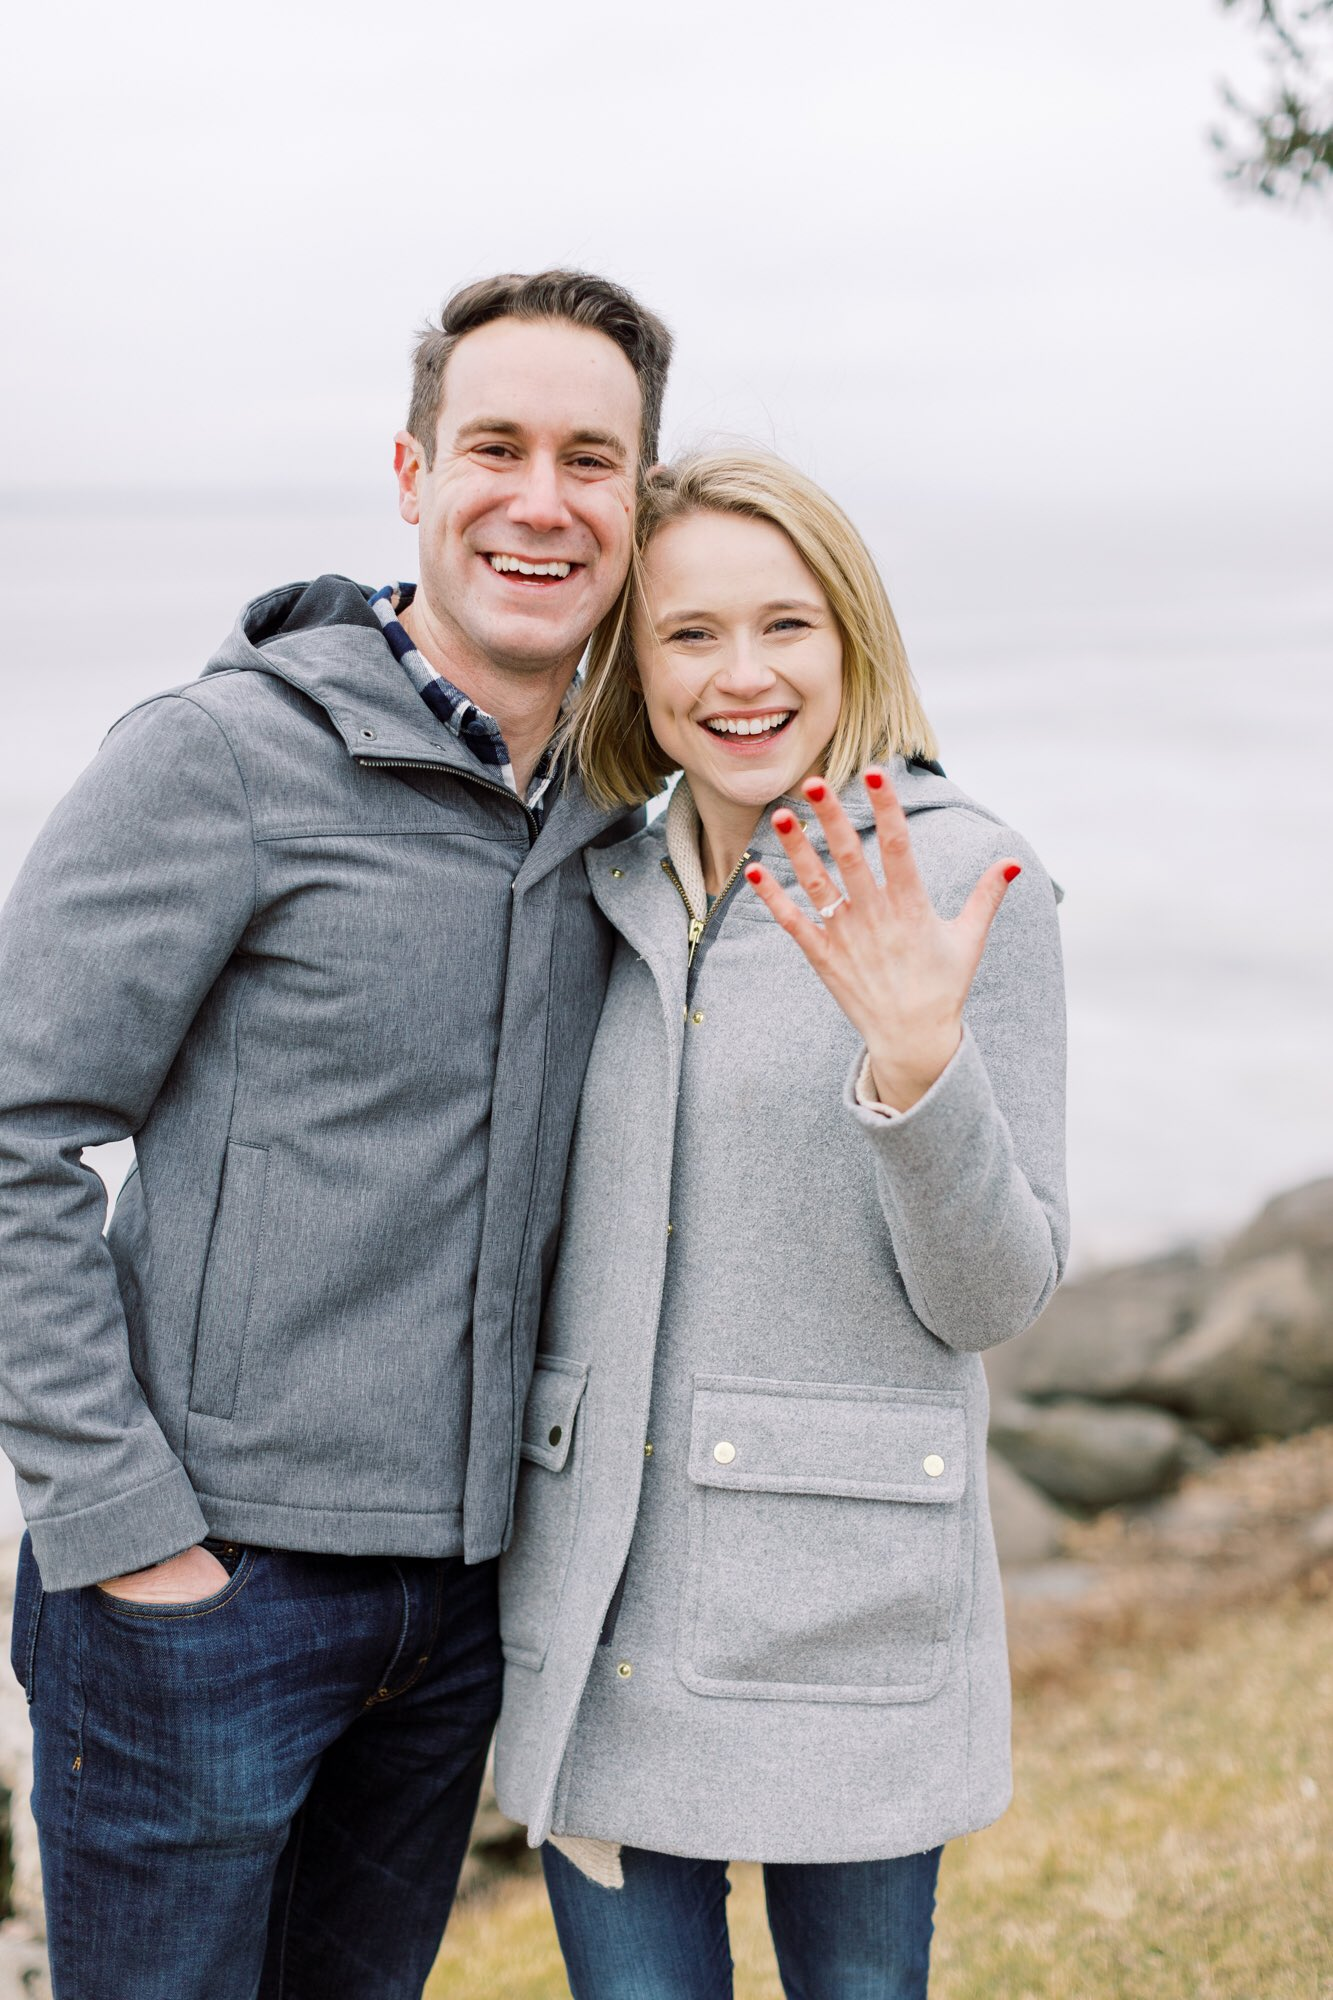 """Brooke Zauner on Twitter: """"To God be the glory! Words couldn't do this moment justice. Saying yes to one of life's greatest blessings, and I'm so grateful. """"My command is this: Love"""